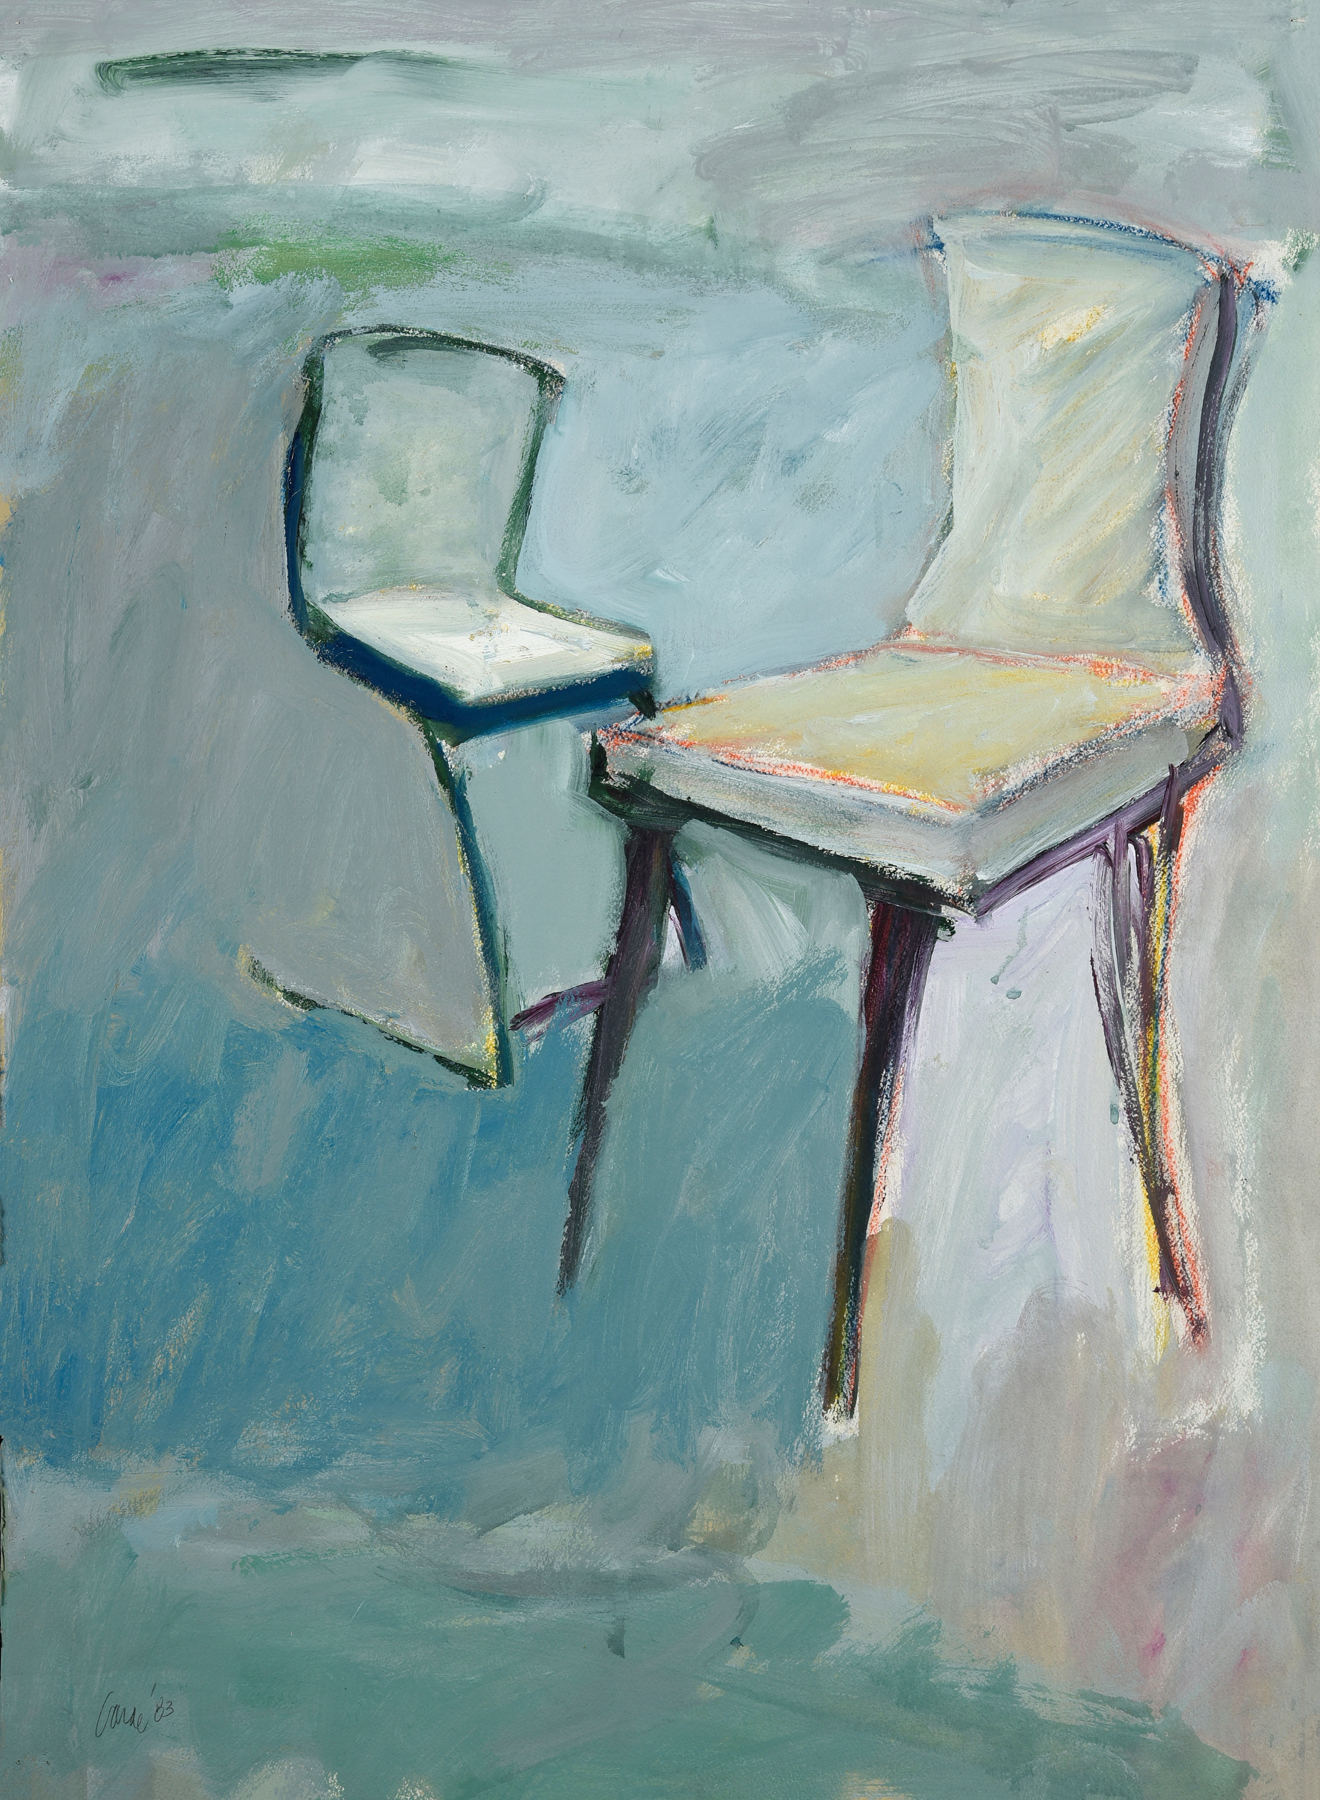 Two Chairs , 1983. Acrylic on Canvas, 30 x 22 in. (76 x 56 cm.)